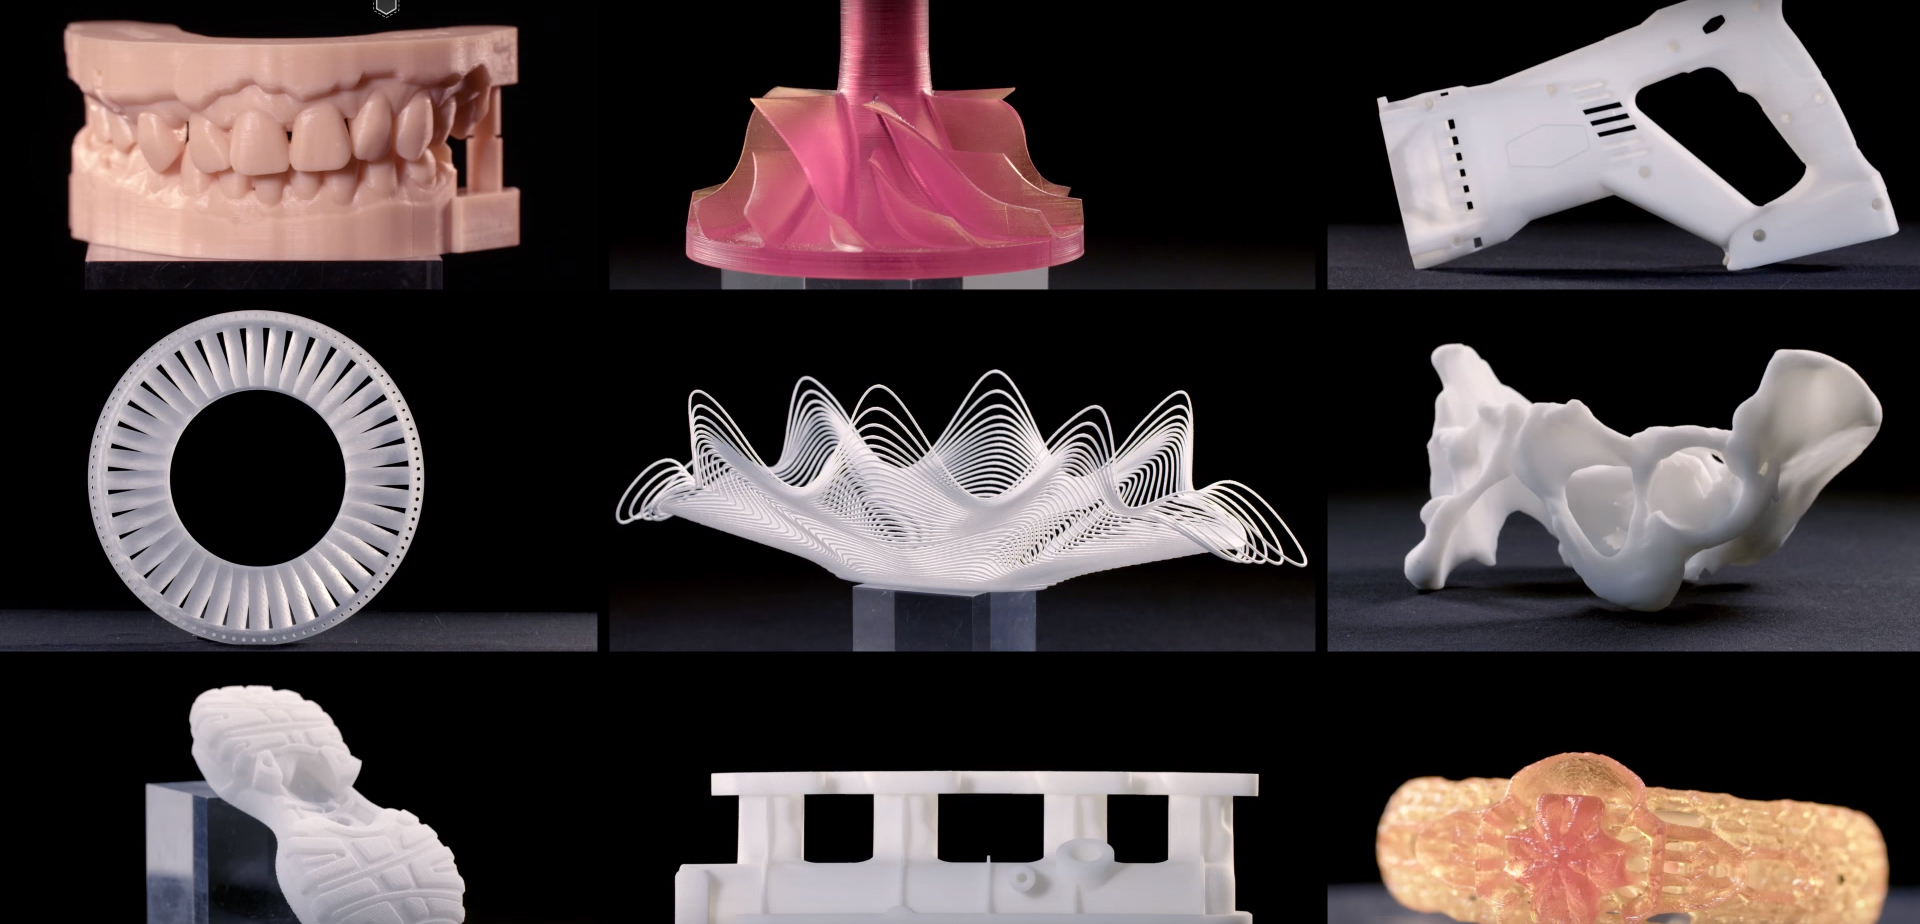 3D printed products from Prodways. Image via Prodways